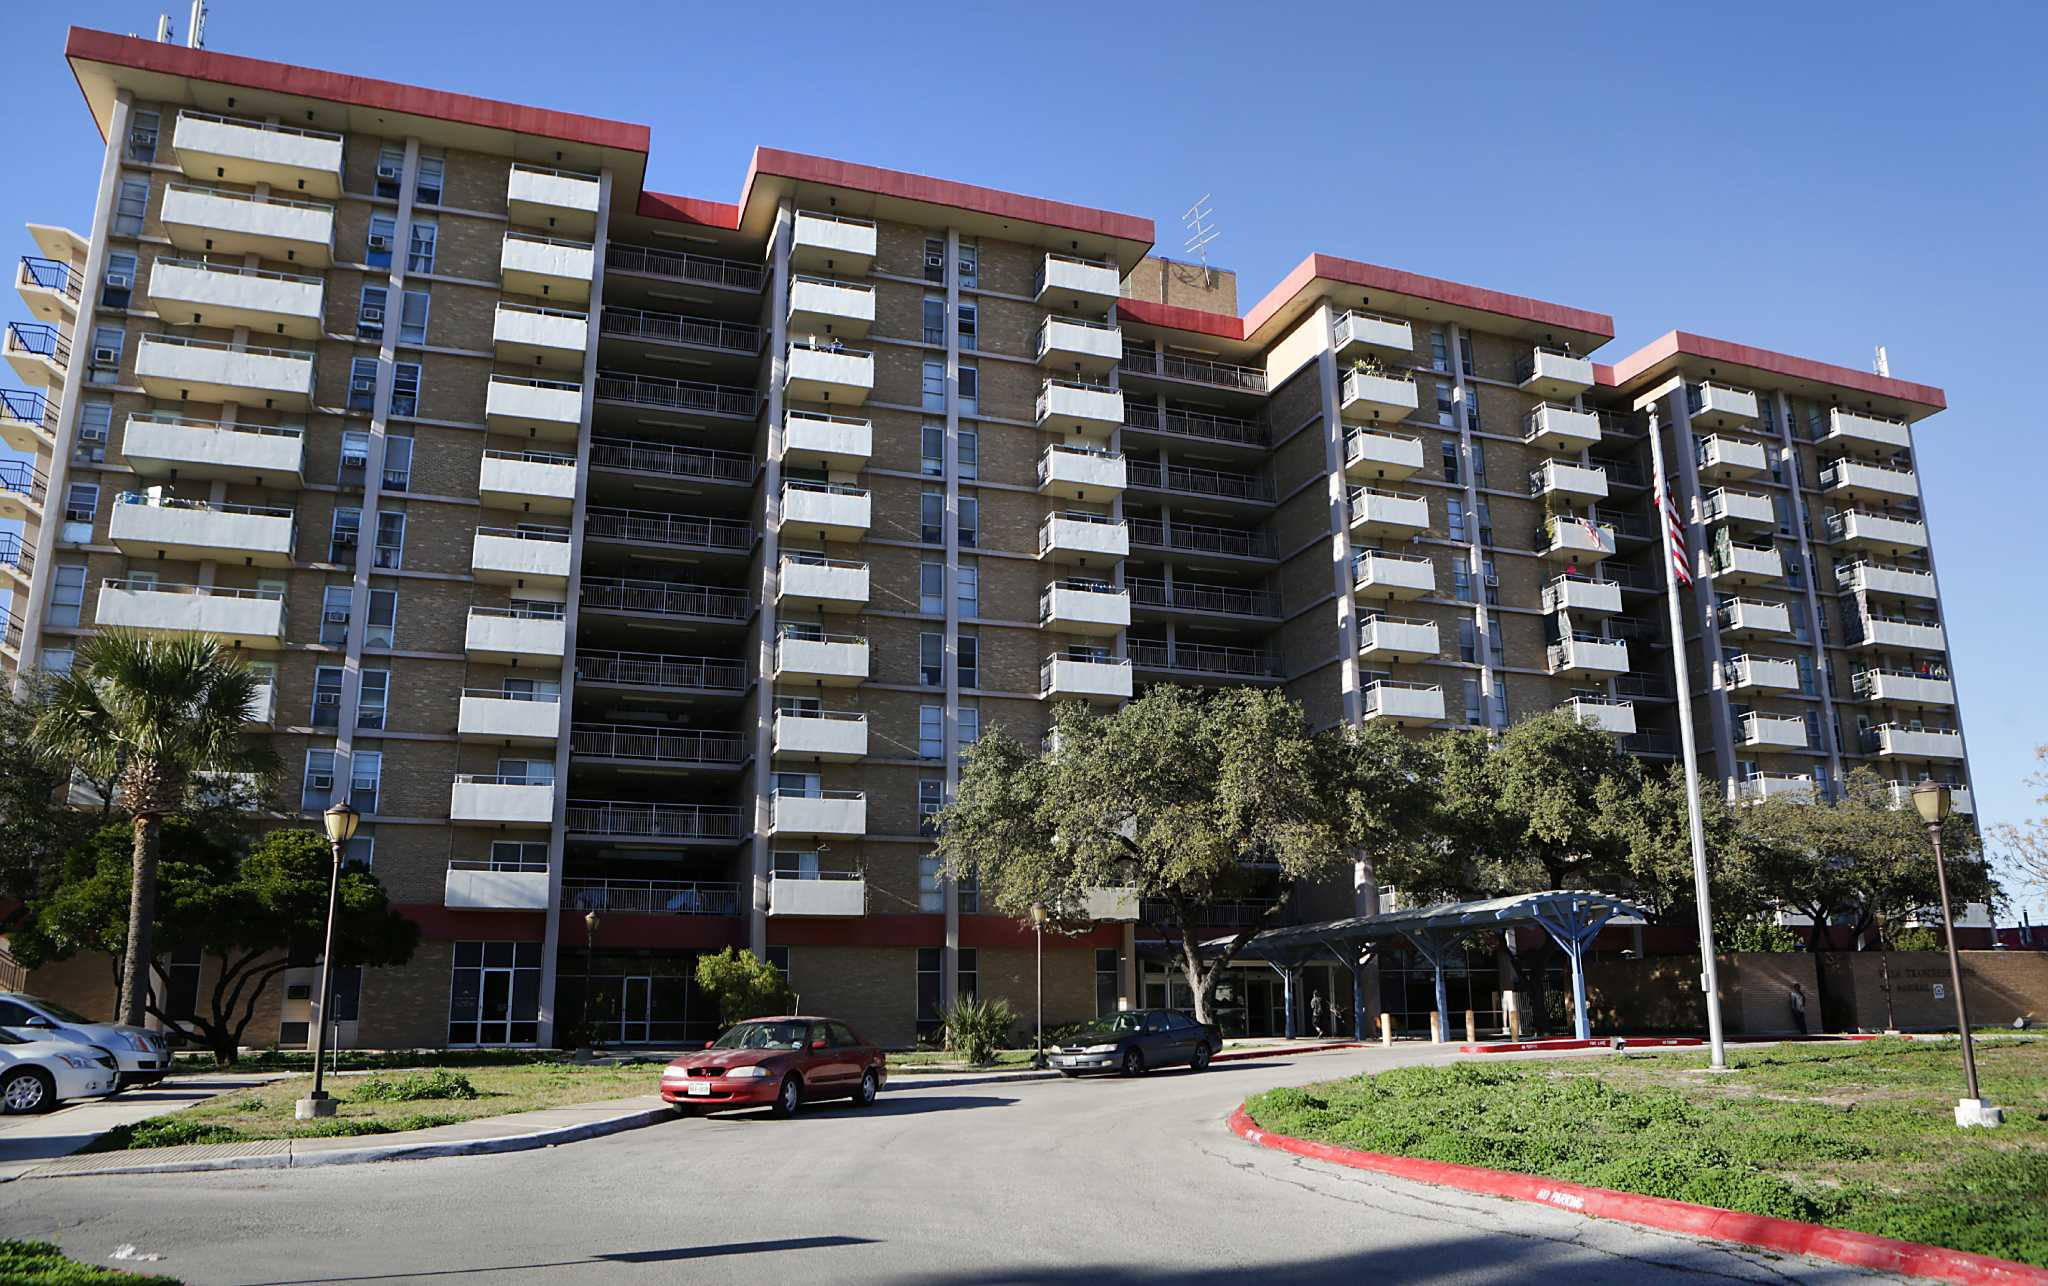 5 High Rises Housing Seniors In San Antonio Lack Sprinkler Systems Express News